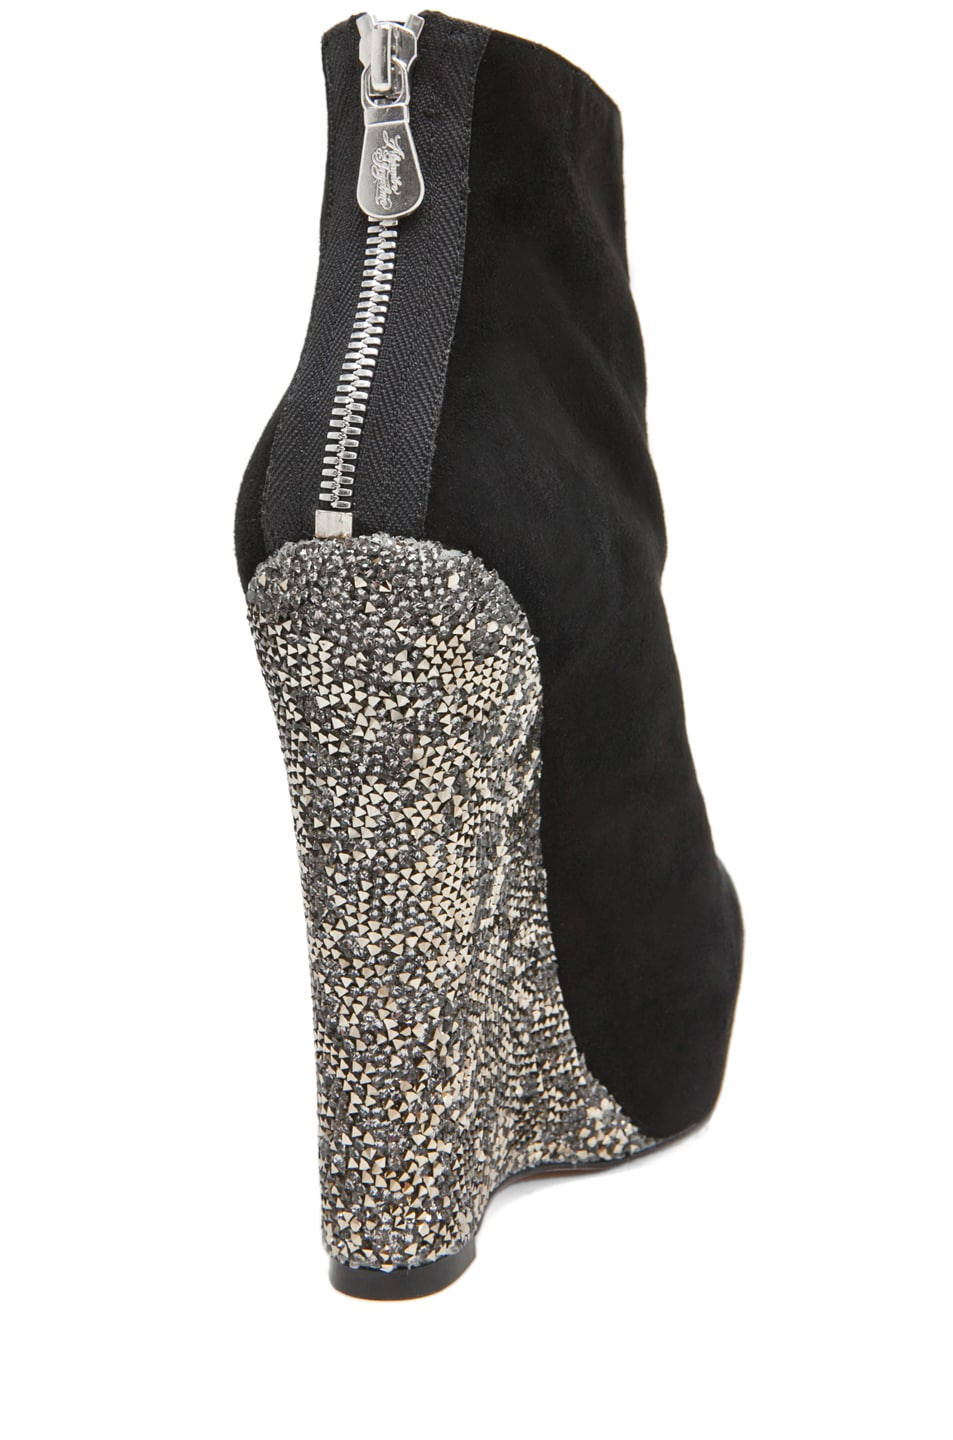 Image 3 of Alejandro Ingelmo Crystal Crosby Wedge in Black/Silver